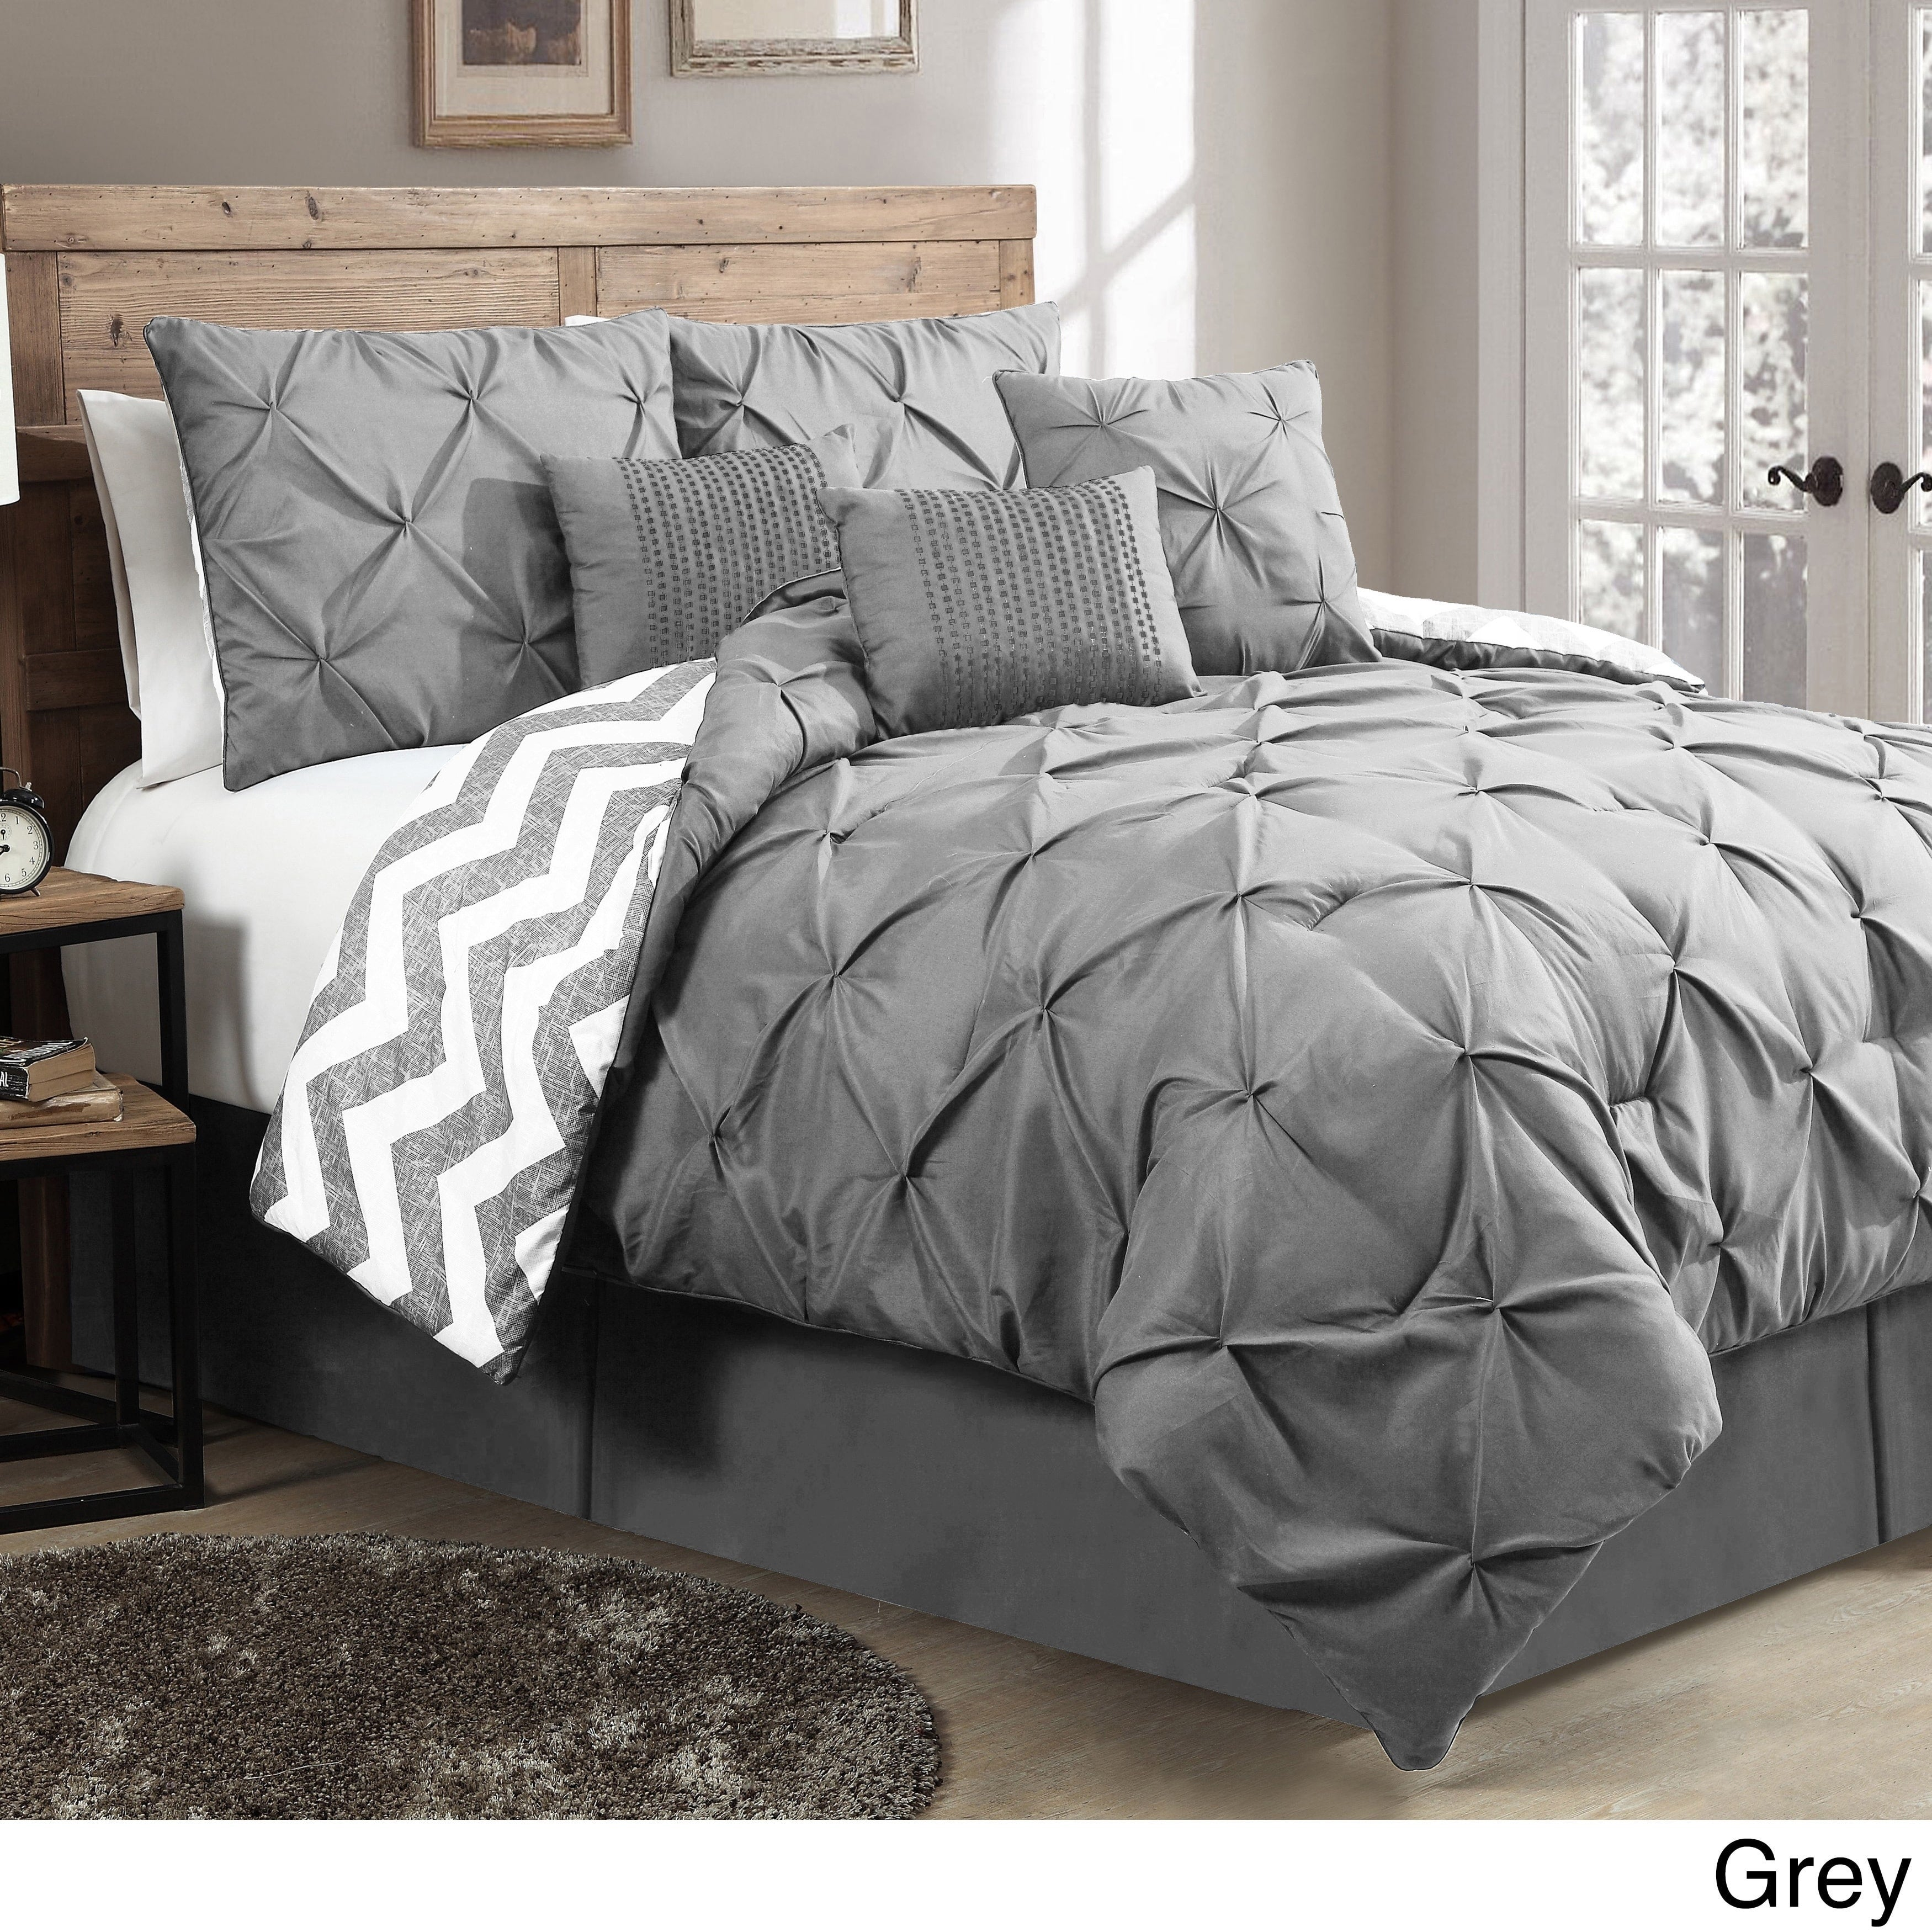 comforter duvet pinch bedding piece nikola pleat designs com cover pintuck king